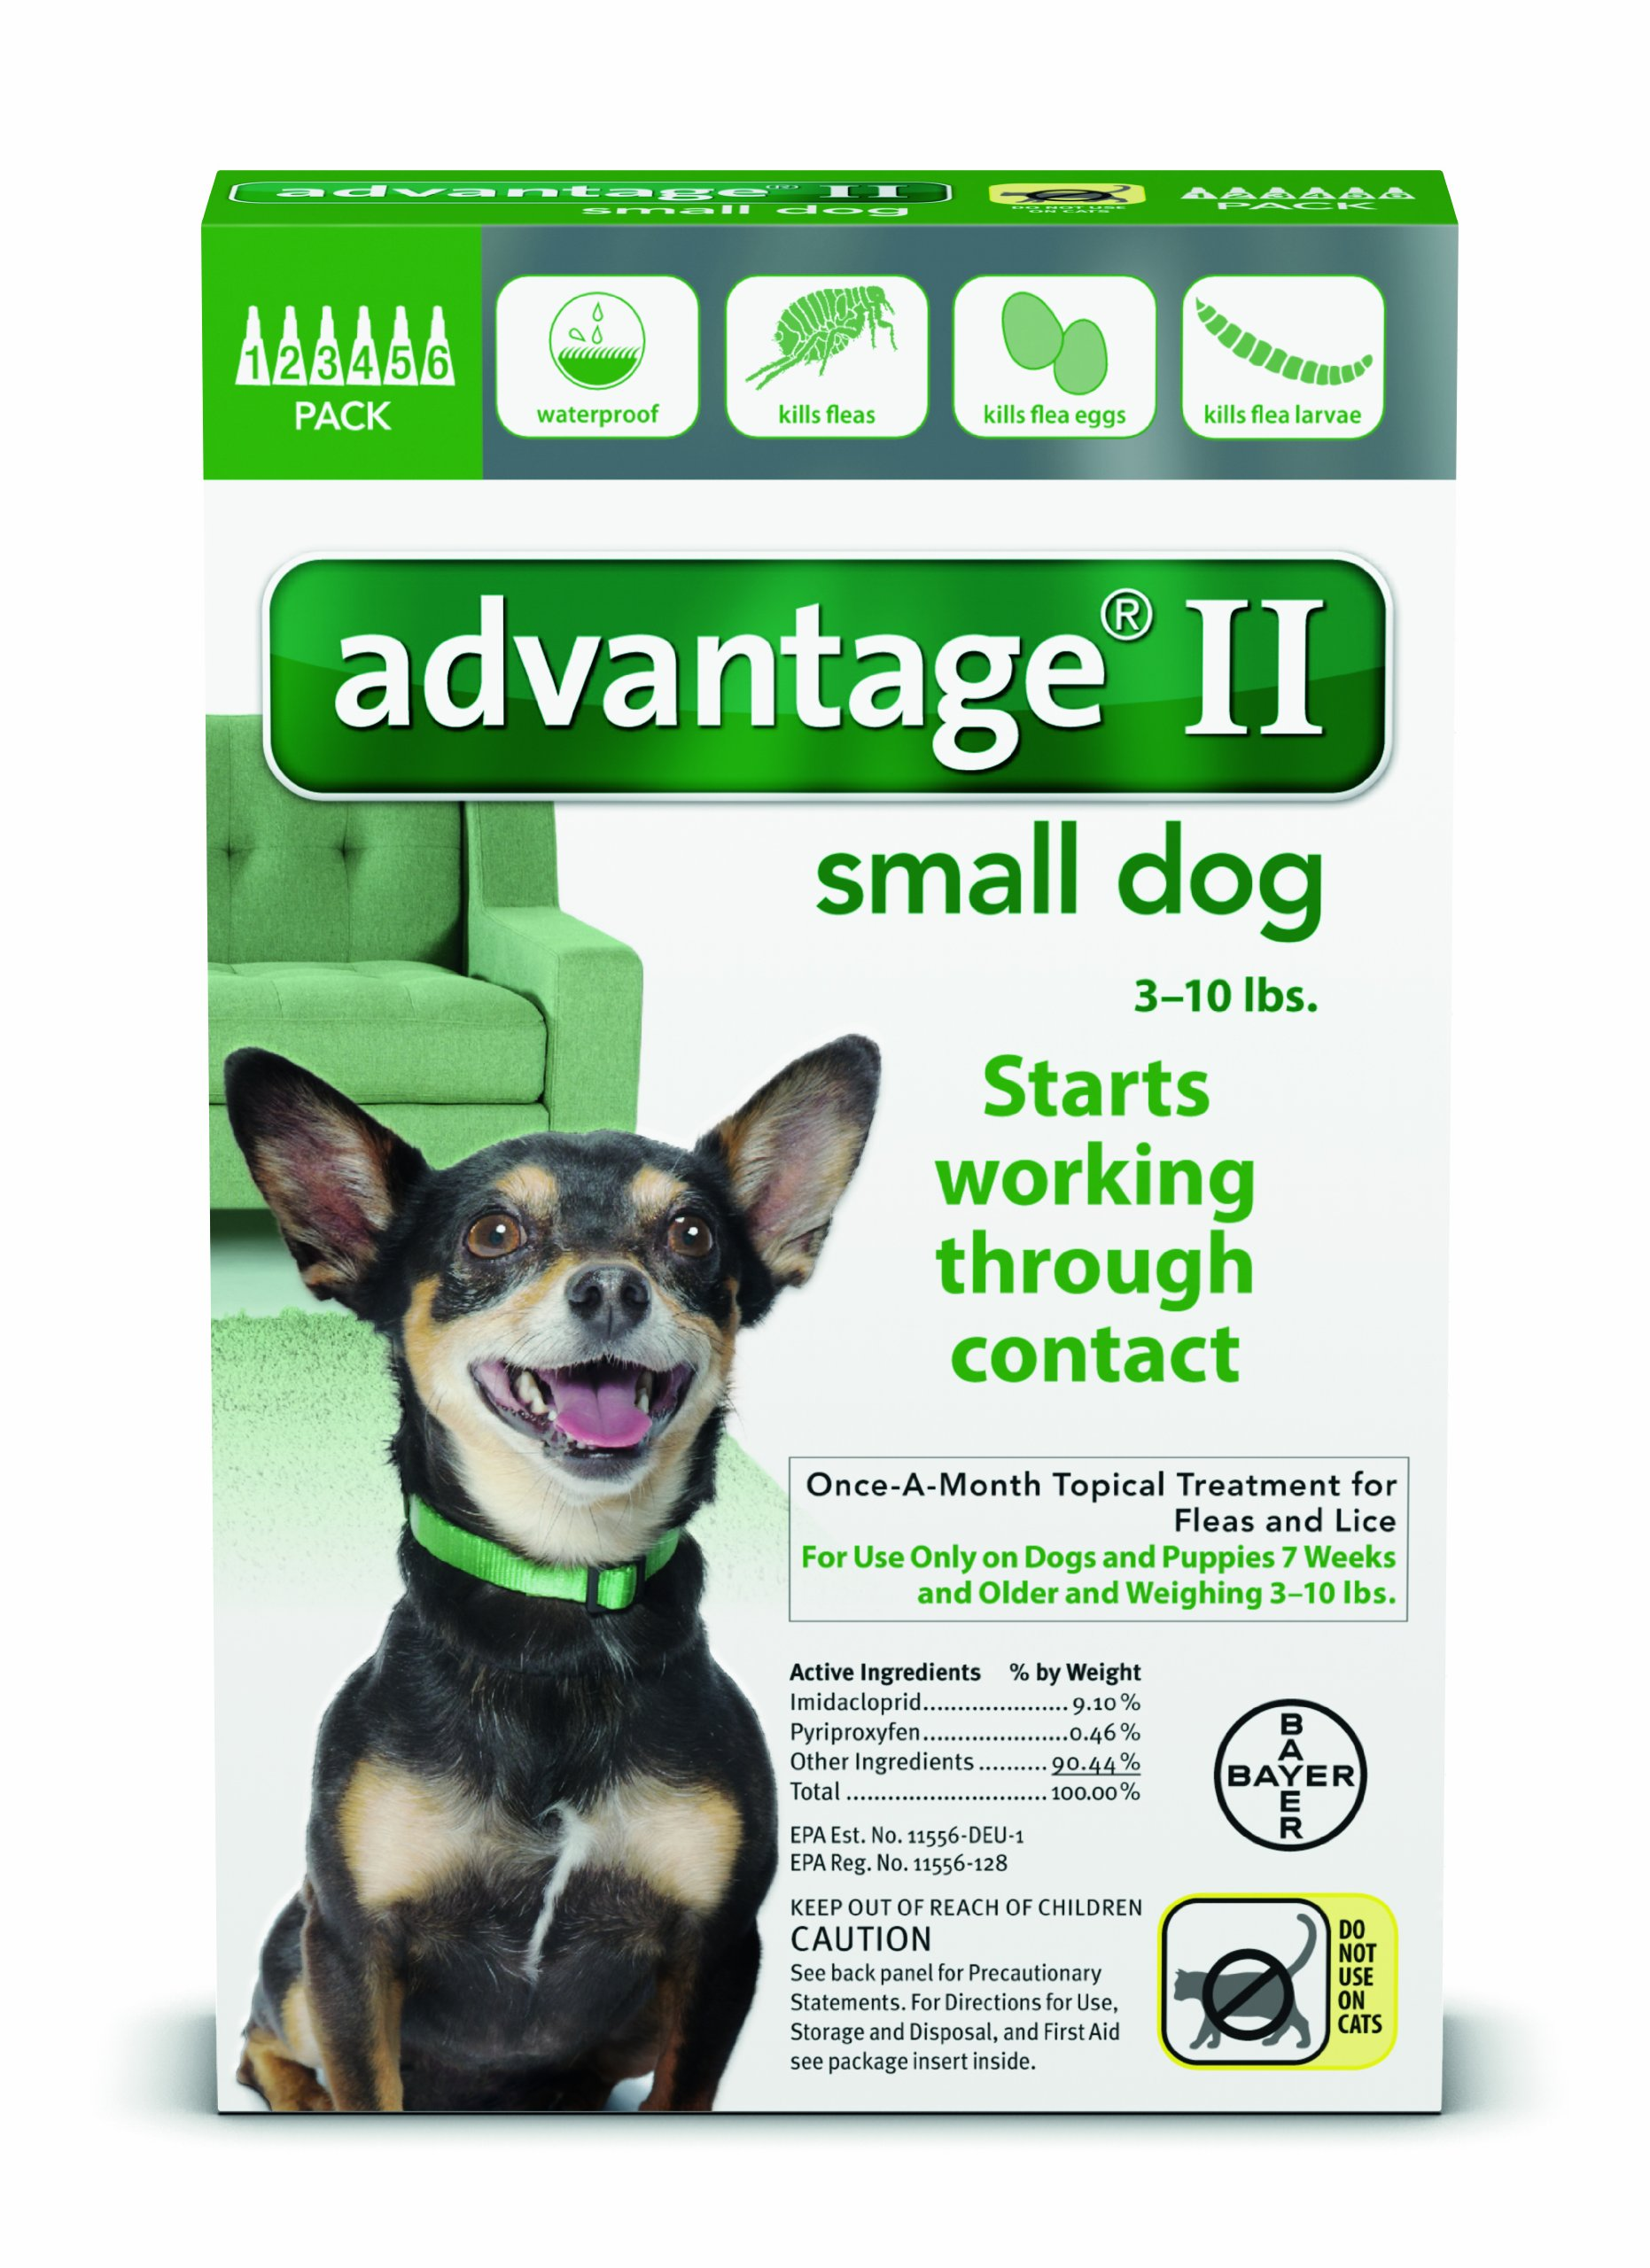 Bayer Animal Health Advantage II for Dogs 10 lbs and Under - 6 pack by Bayer Animal Health